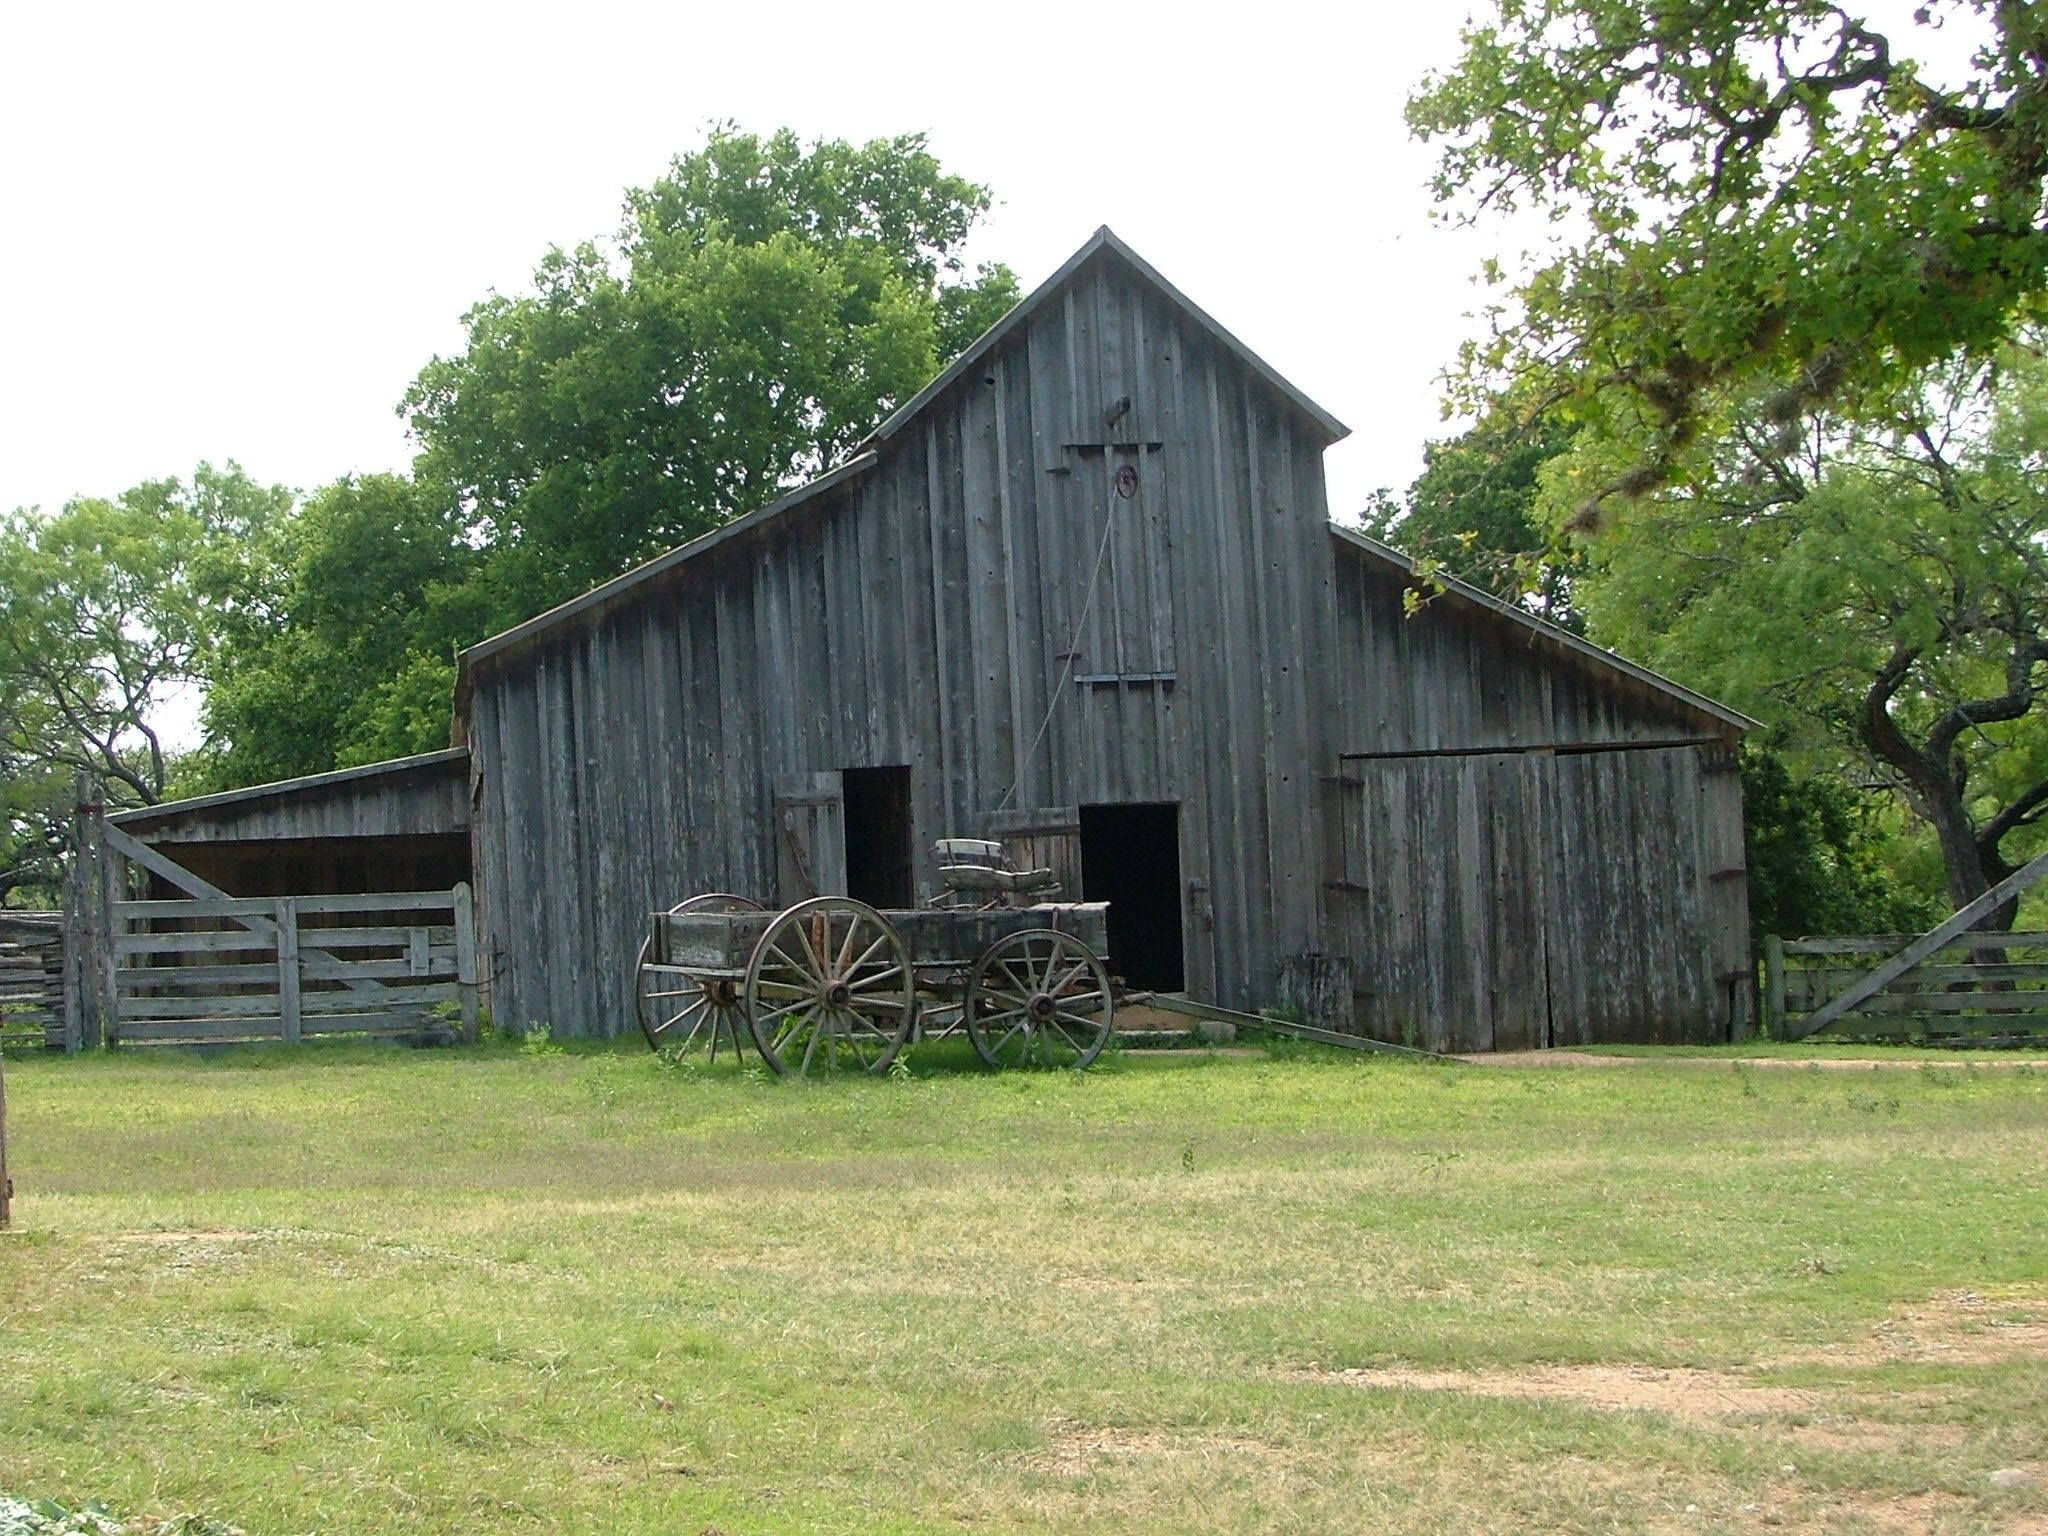 Rustic Barns old barns images | hill country barn and wagon | rustic images